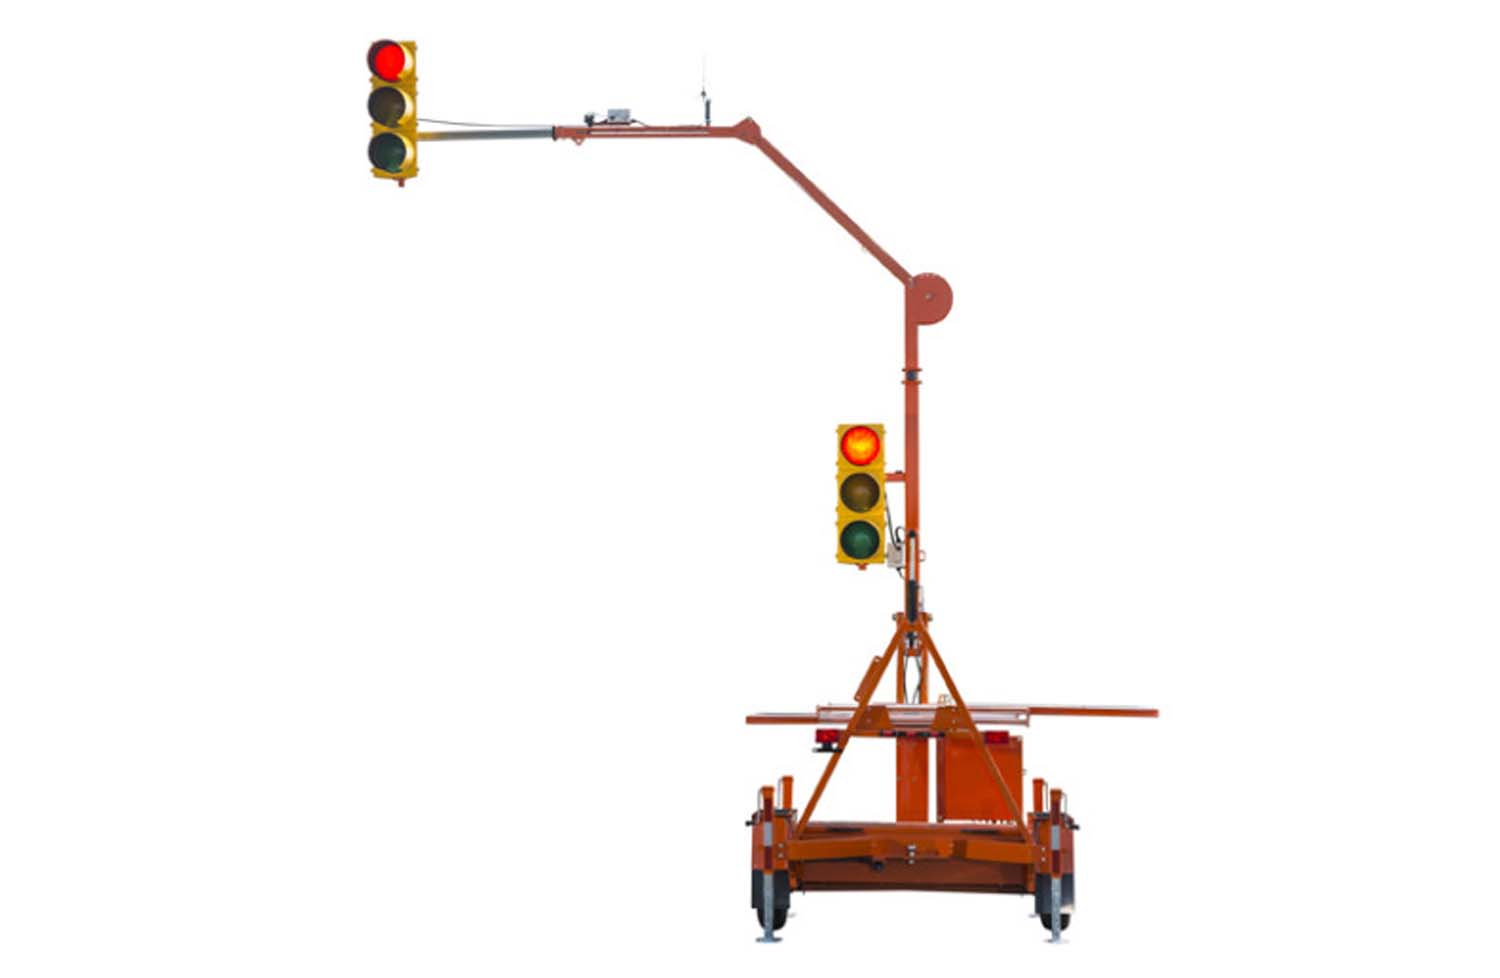 Bird-Dog-Traffic-Control-Equipment-Rentals-Portable-Light-Towers